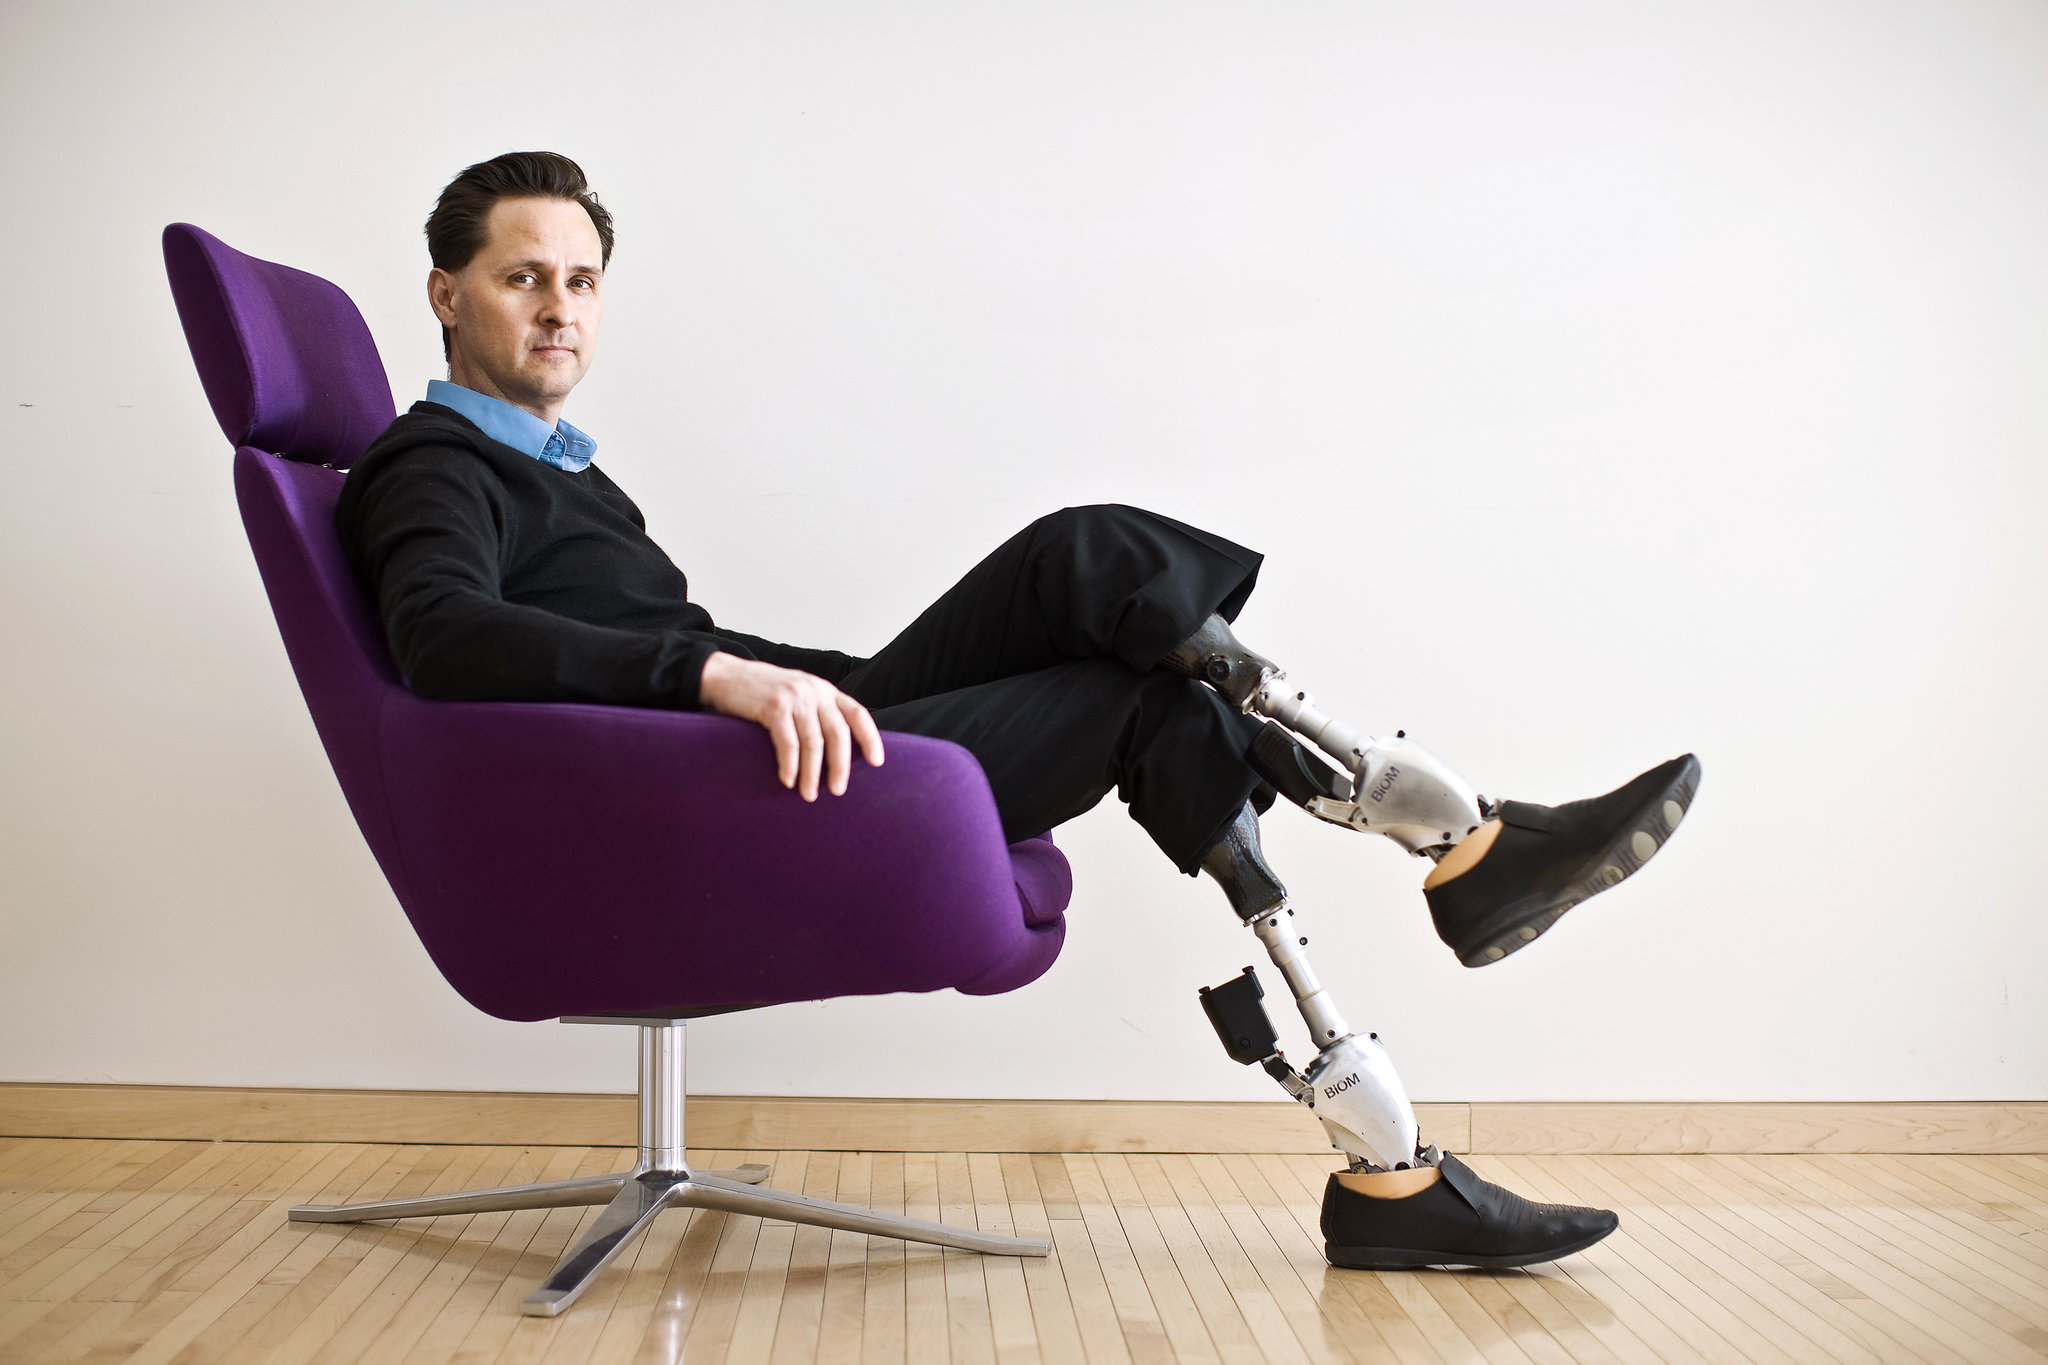 hugh_herr_lead_user